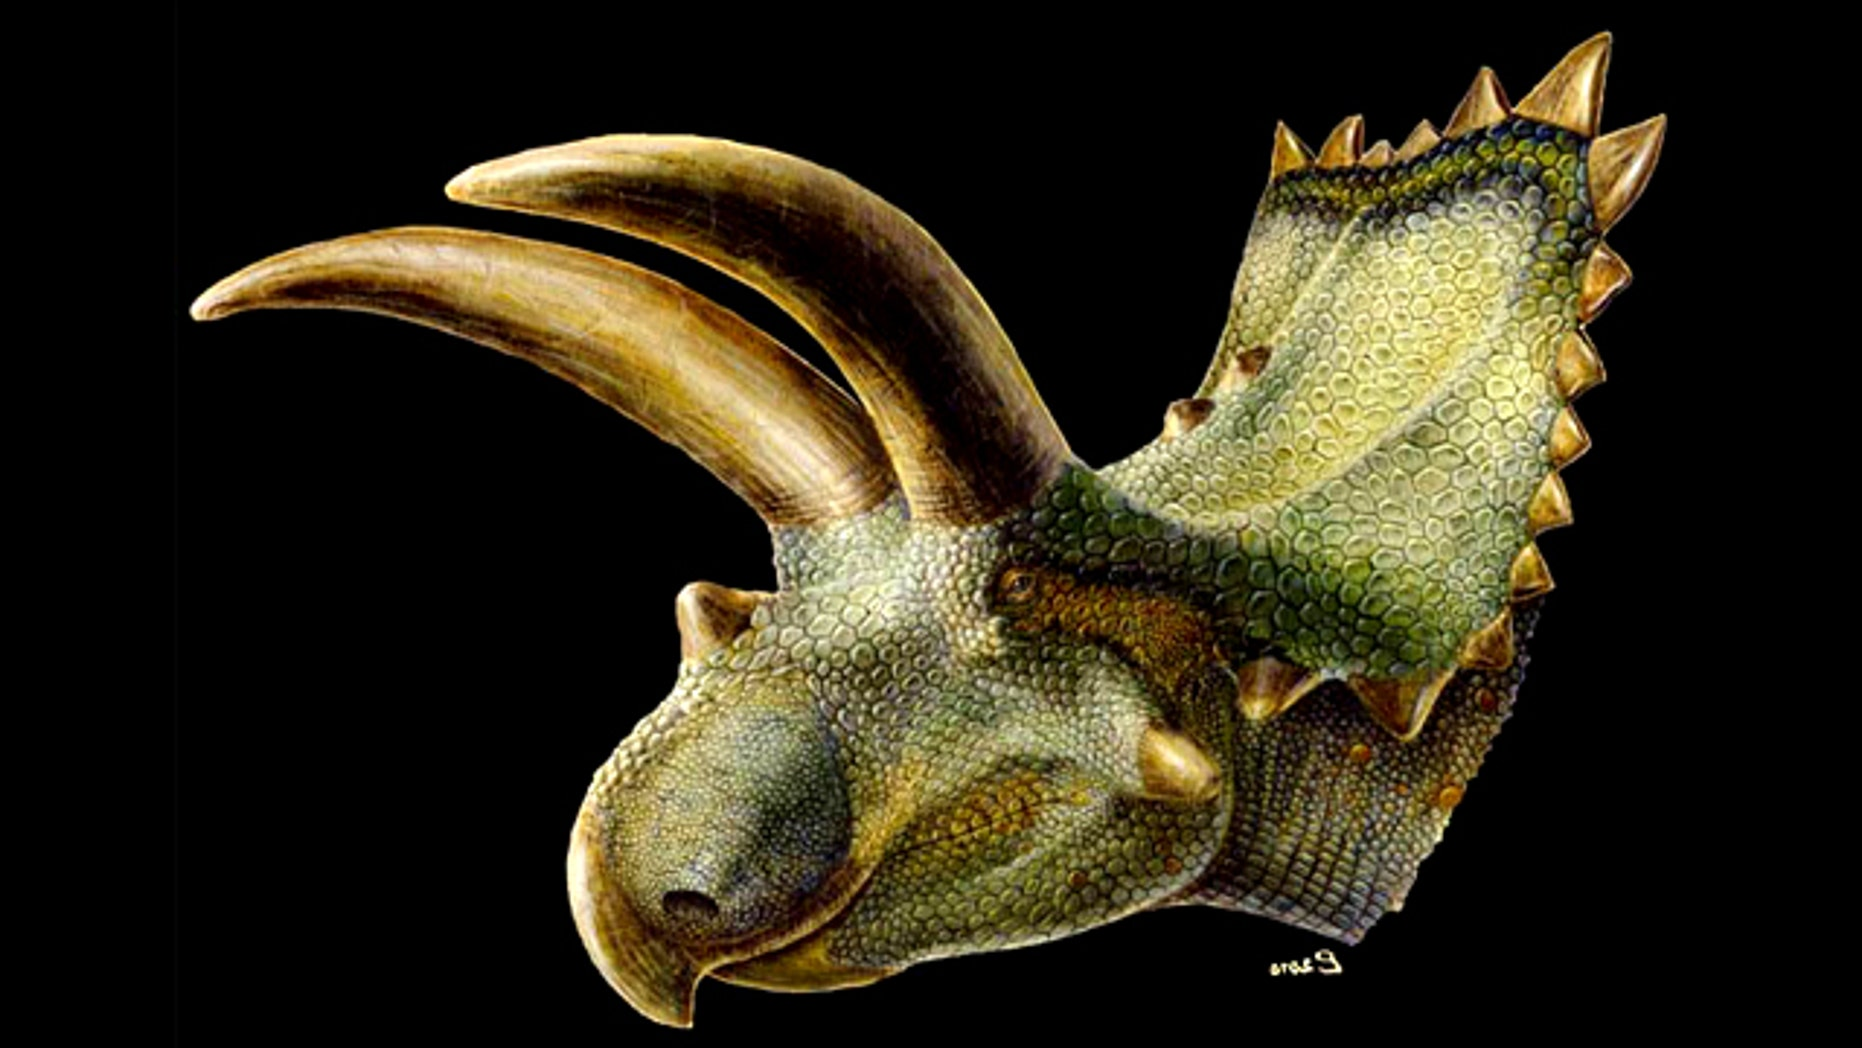 This fleshed-out artist's rendering of the Mexican horned dinosaur Coahuilaceratops, shows its gigantic horns – larger than any member of its group, including the famous Triceratops.